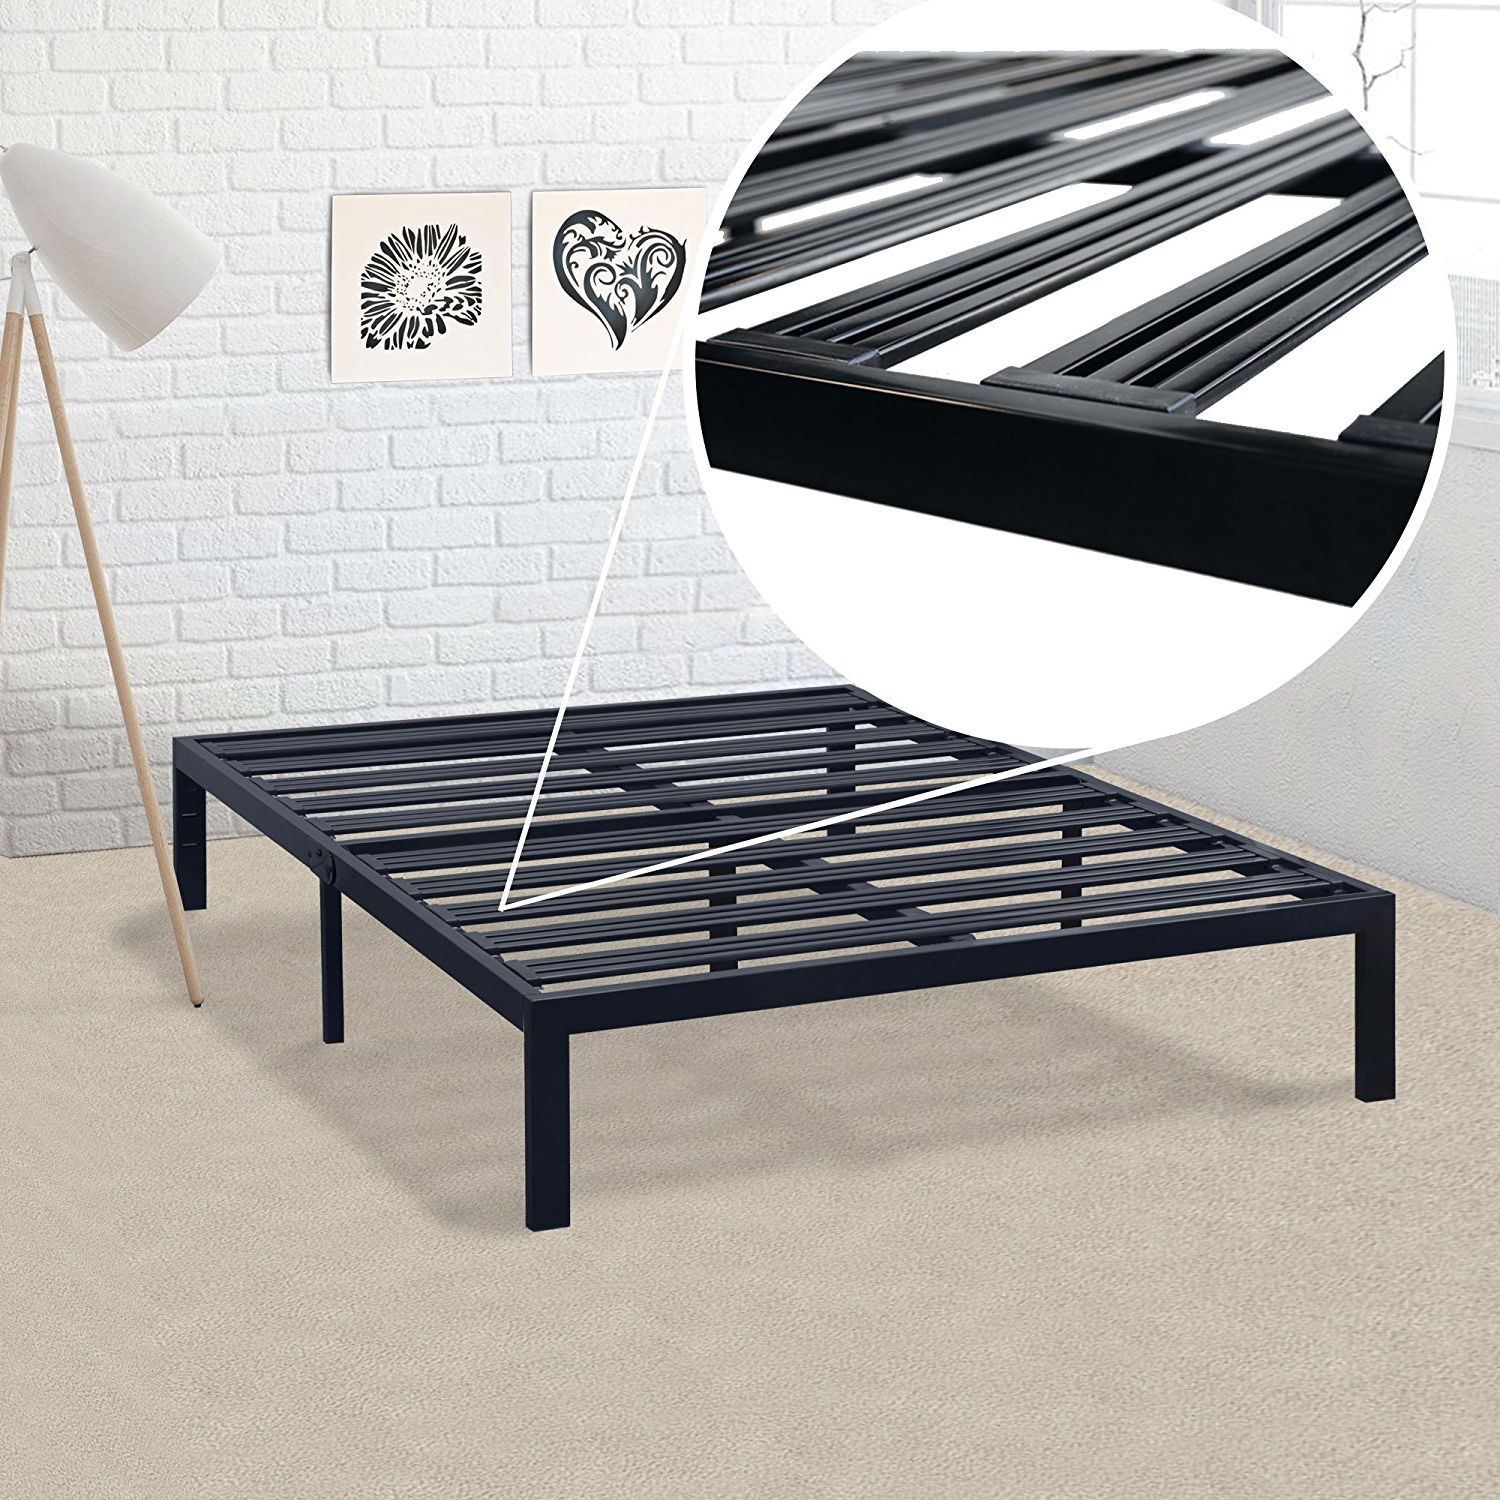 bed frame with slats image collections